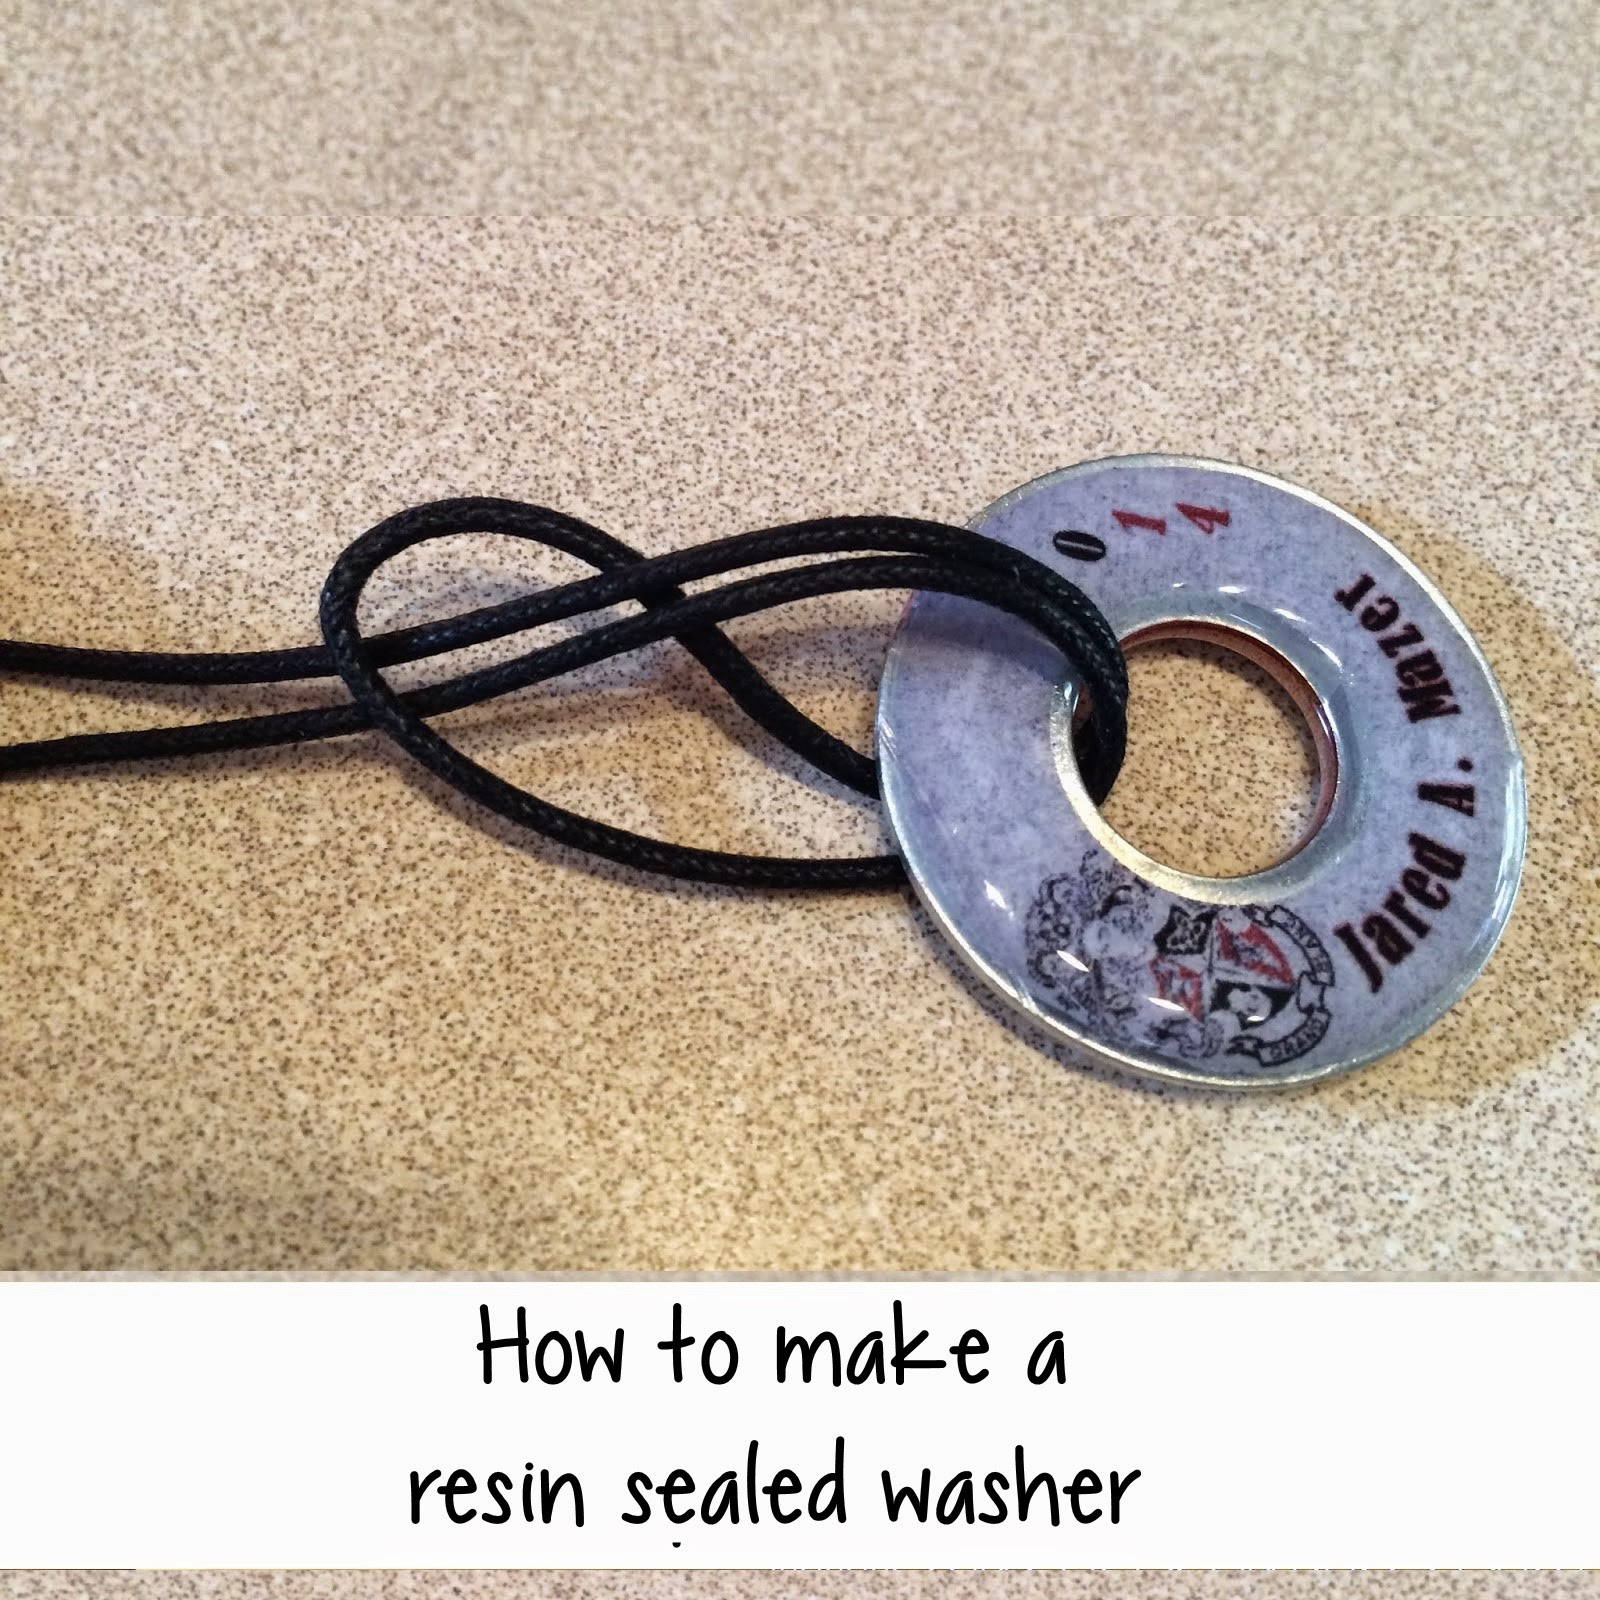 using free handmade img to a washer washers necklace article bracelet jewelry how tutorial make created